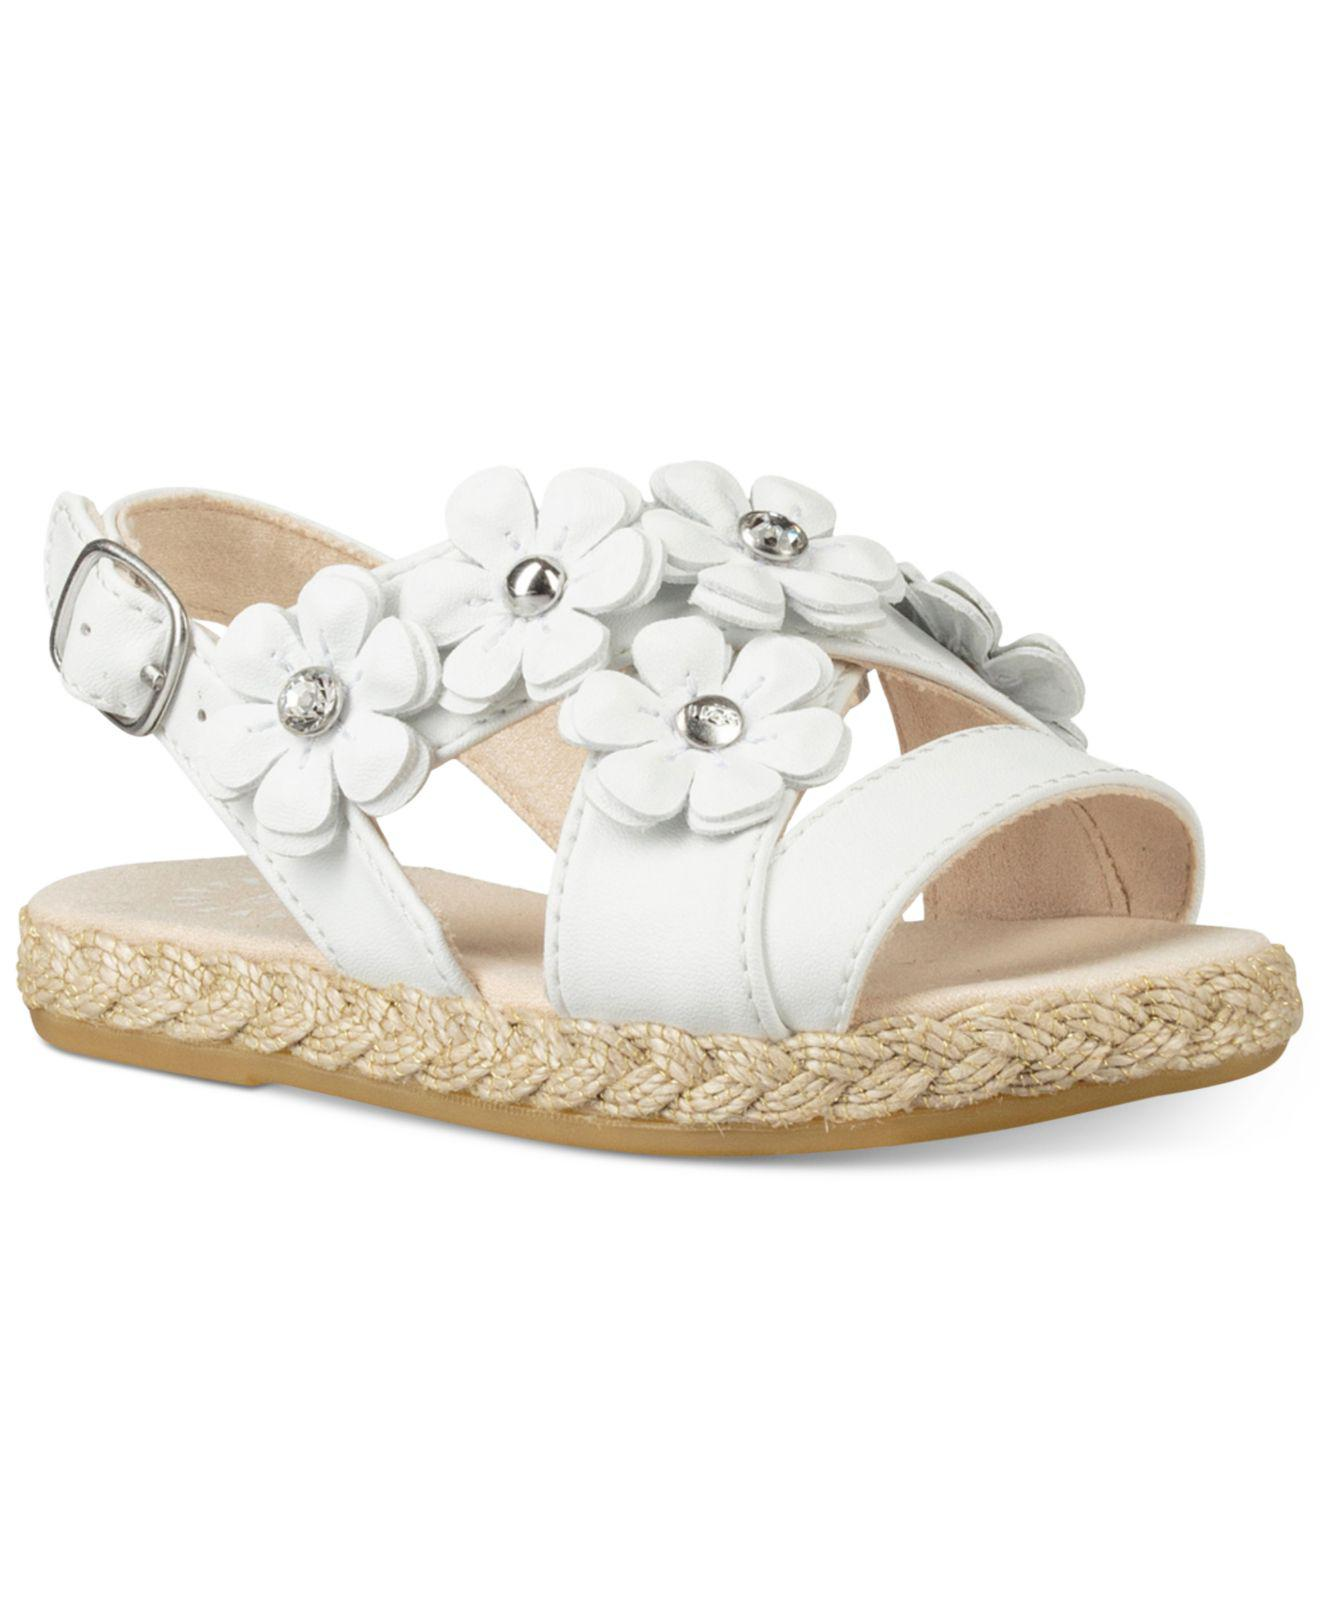 b1c007ac7d8 Lyst - UGG Toddler Allairey Sandals in White